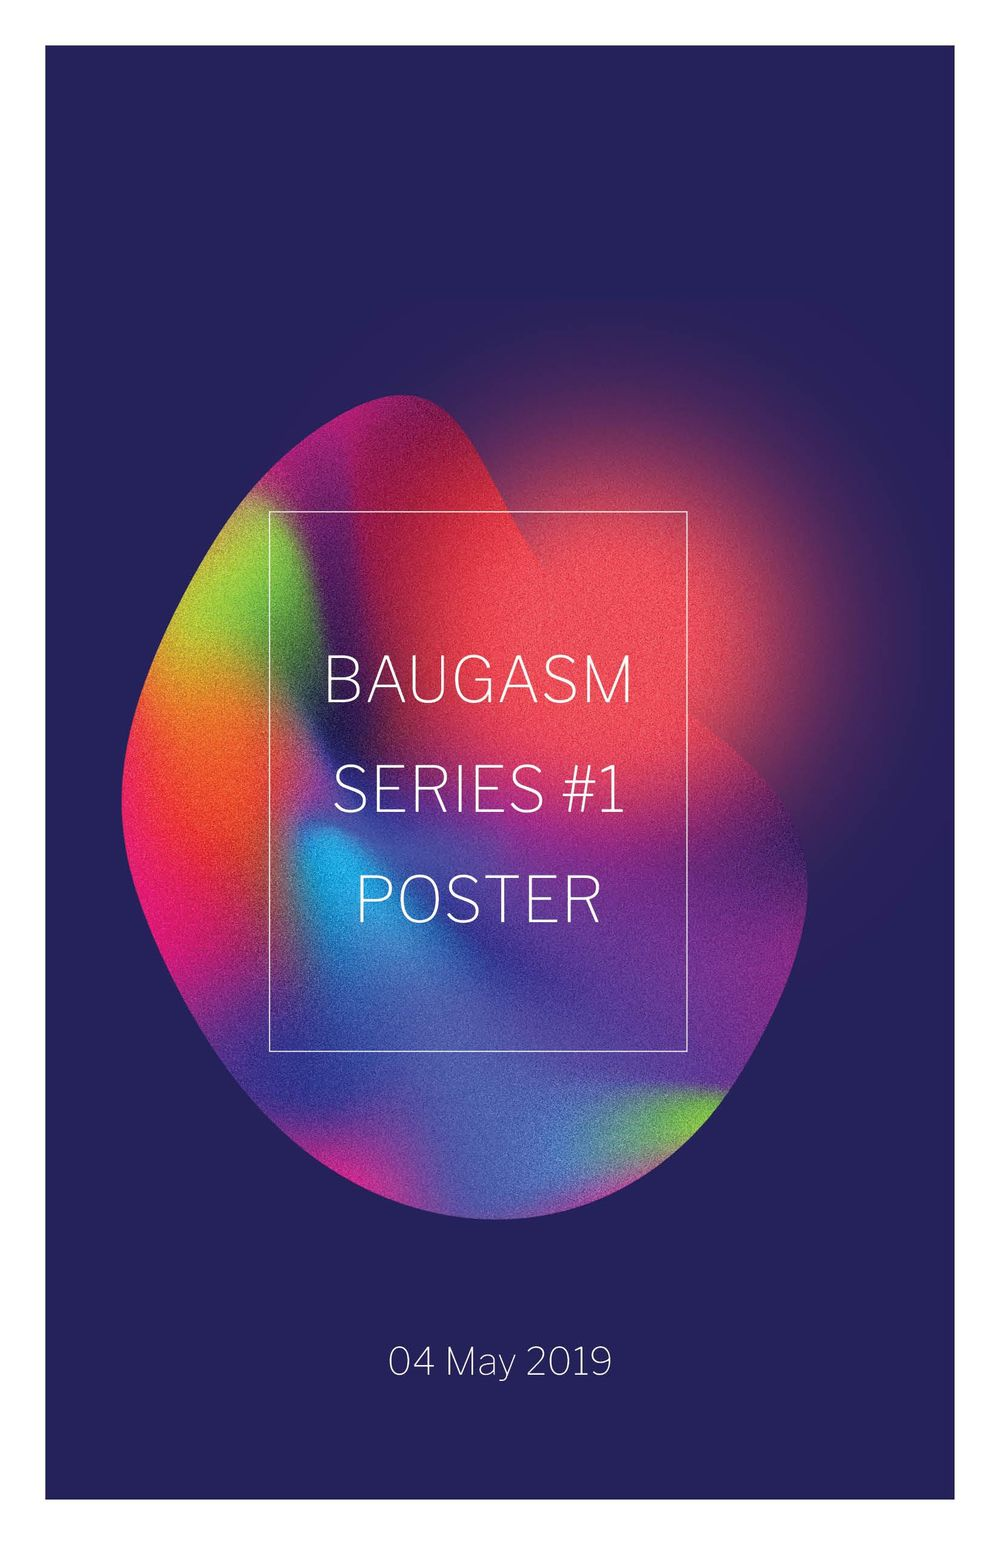 Baugasm Series #1 Poster - image 2 - student project